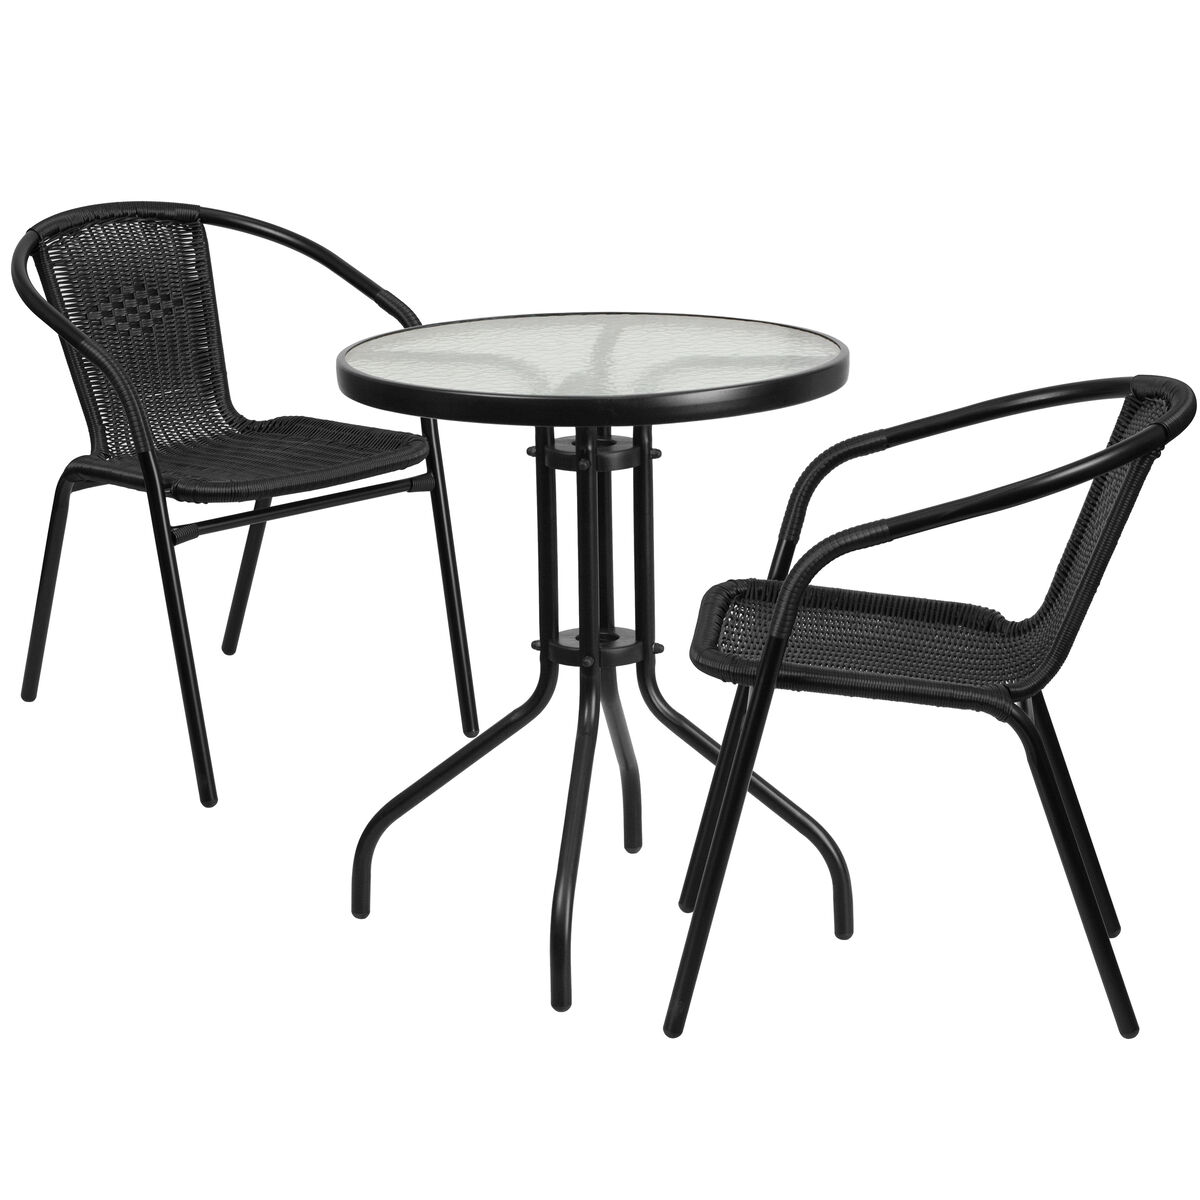 patio for dining stool in with rustic outdoor resin round sets table wicker activity bistro wood furniture garden chairs rattan black set stylishoms plank small